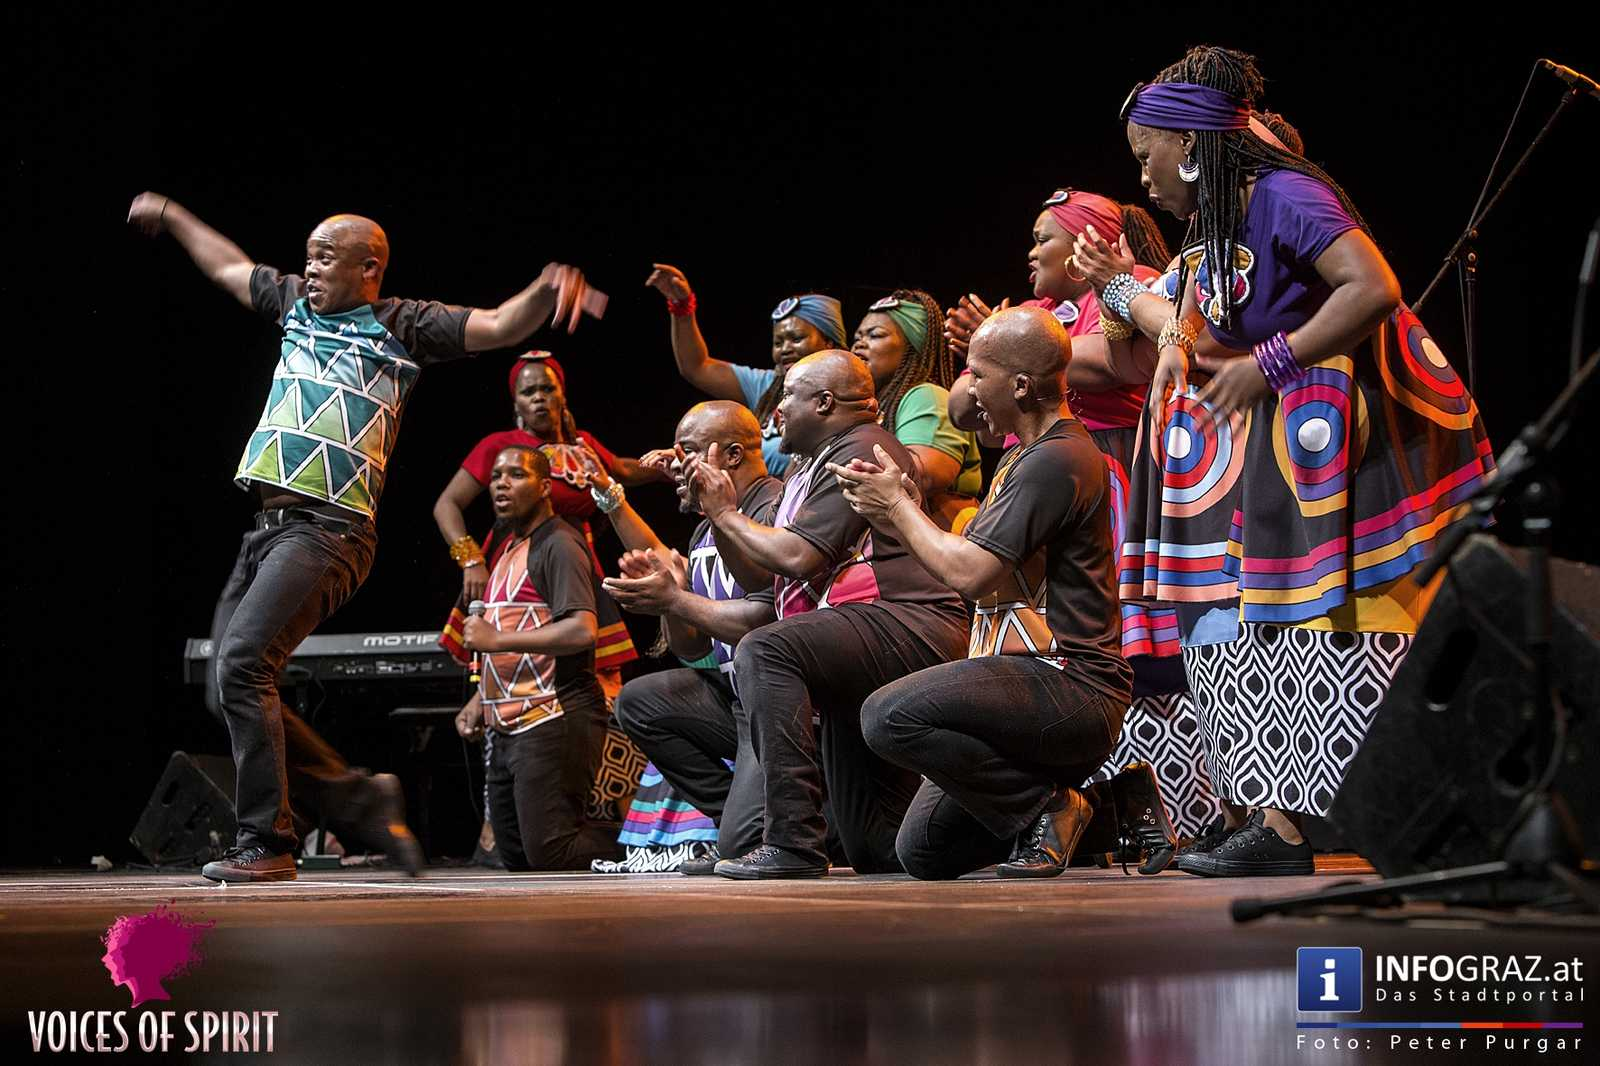 soweto gospel choir internationales chorfestival statdthalle graz voices of spirit eroeffnung festivals 2016 071